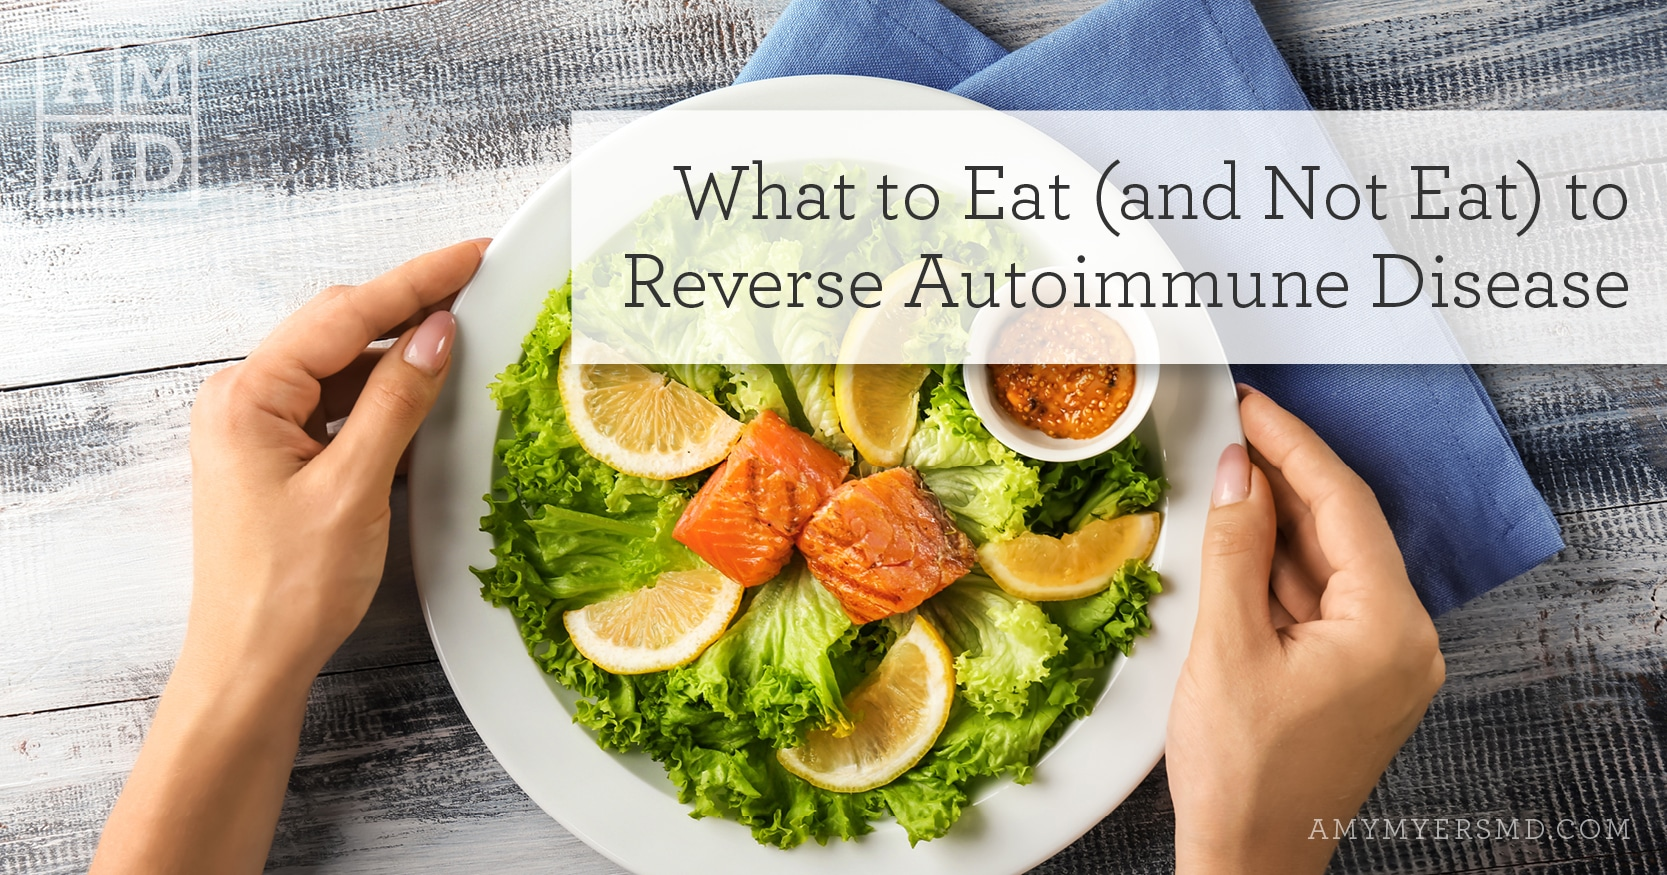 What to Eat (and Not Eat) to Reverse Autoimmune Disease